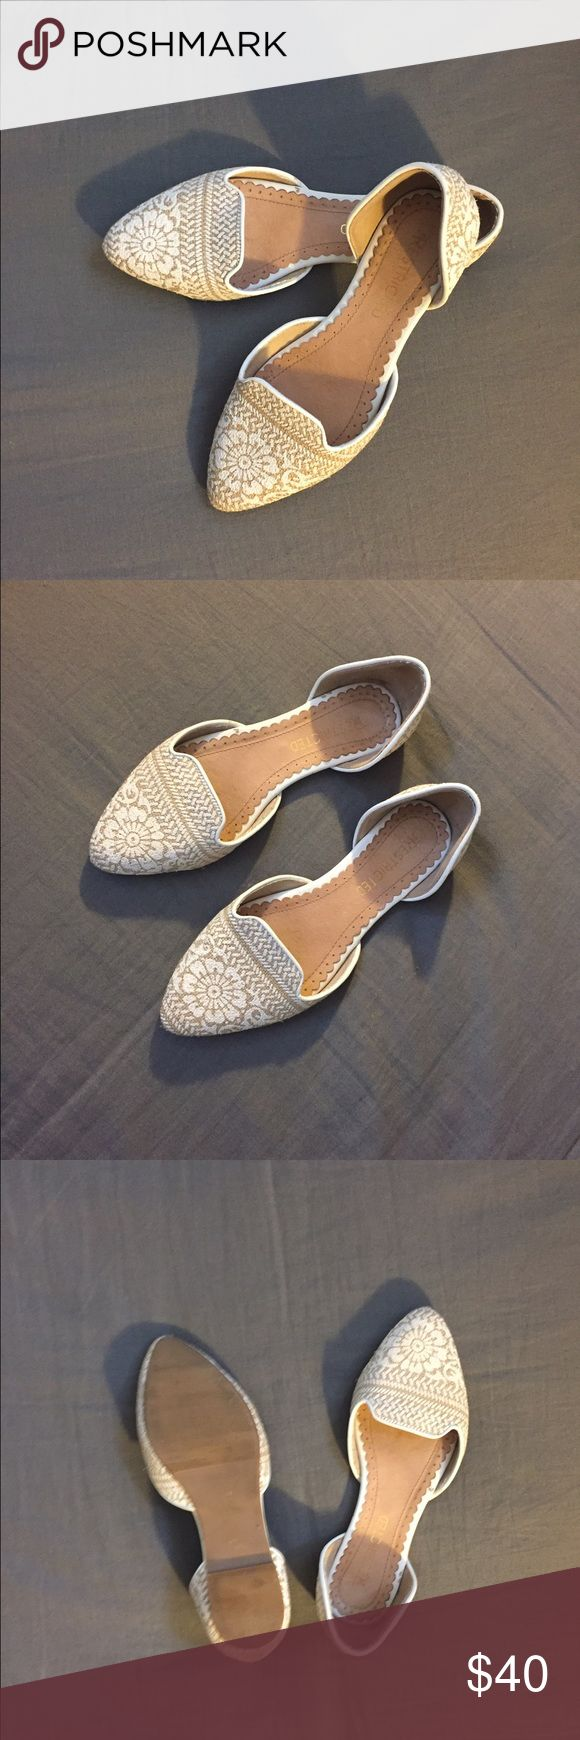 Well-Stepped Flats Gorgeous white pointed flats. Worn twice. Very good condition! Restricted Shoes Flats & Loafers